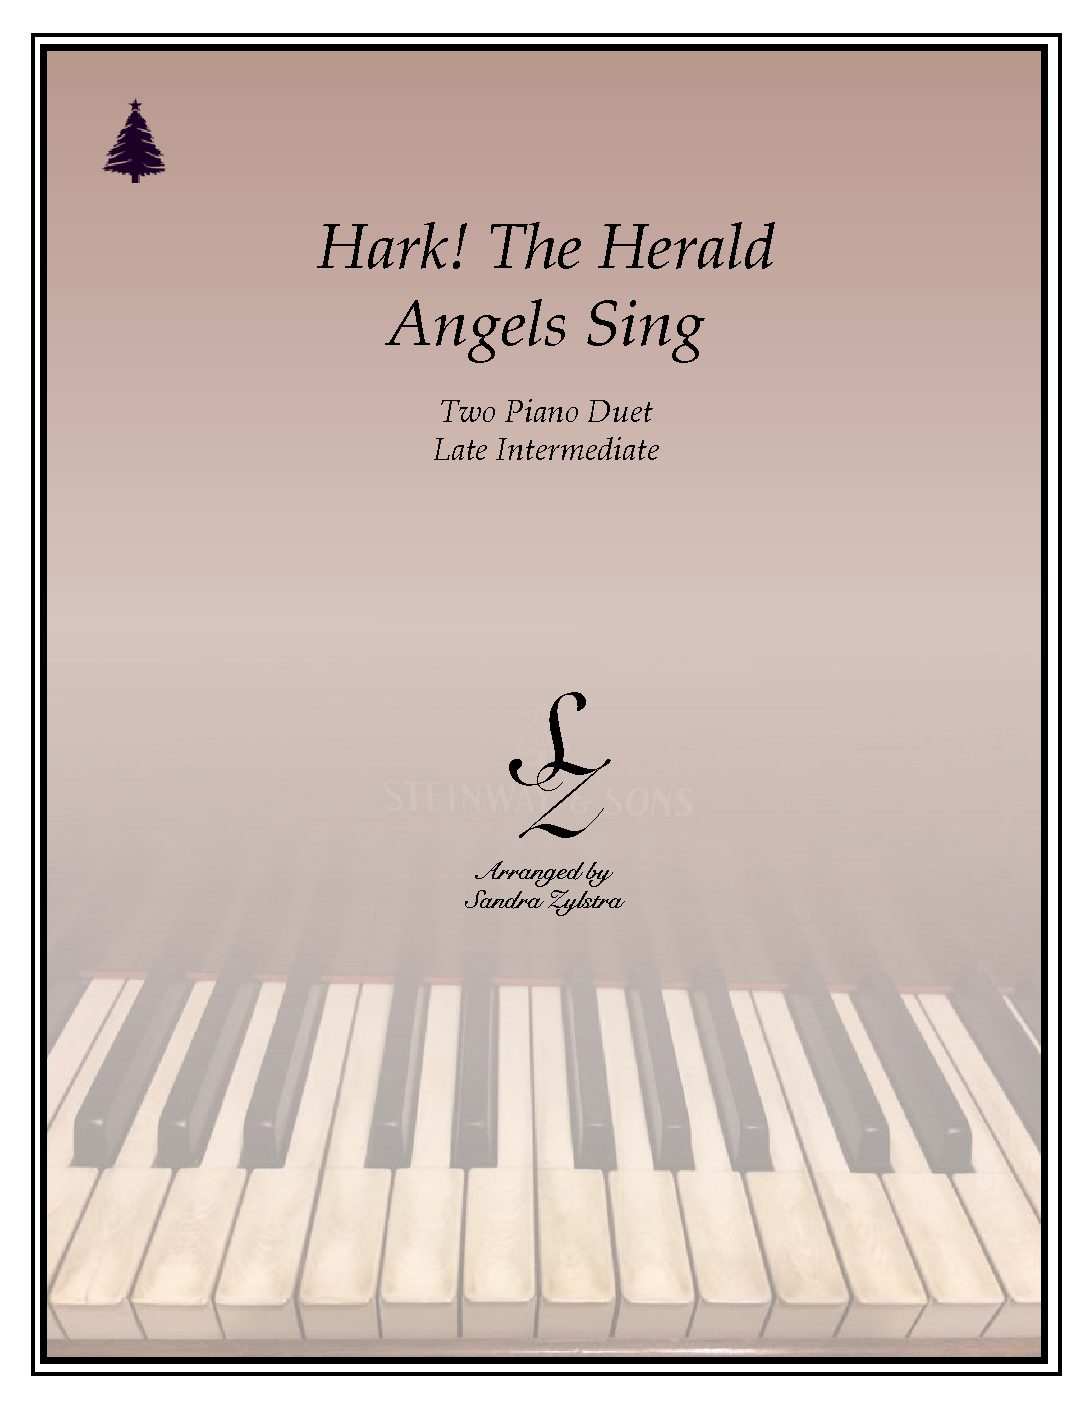 Hark! The Herald Angels Sing -Two Piano Duet